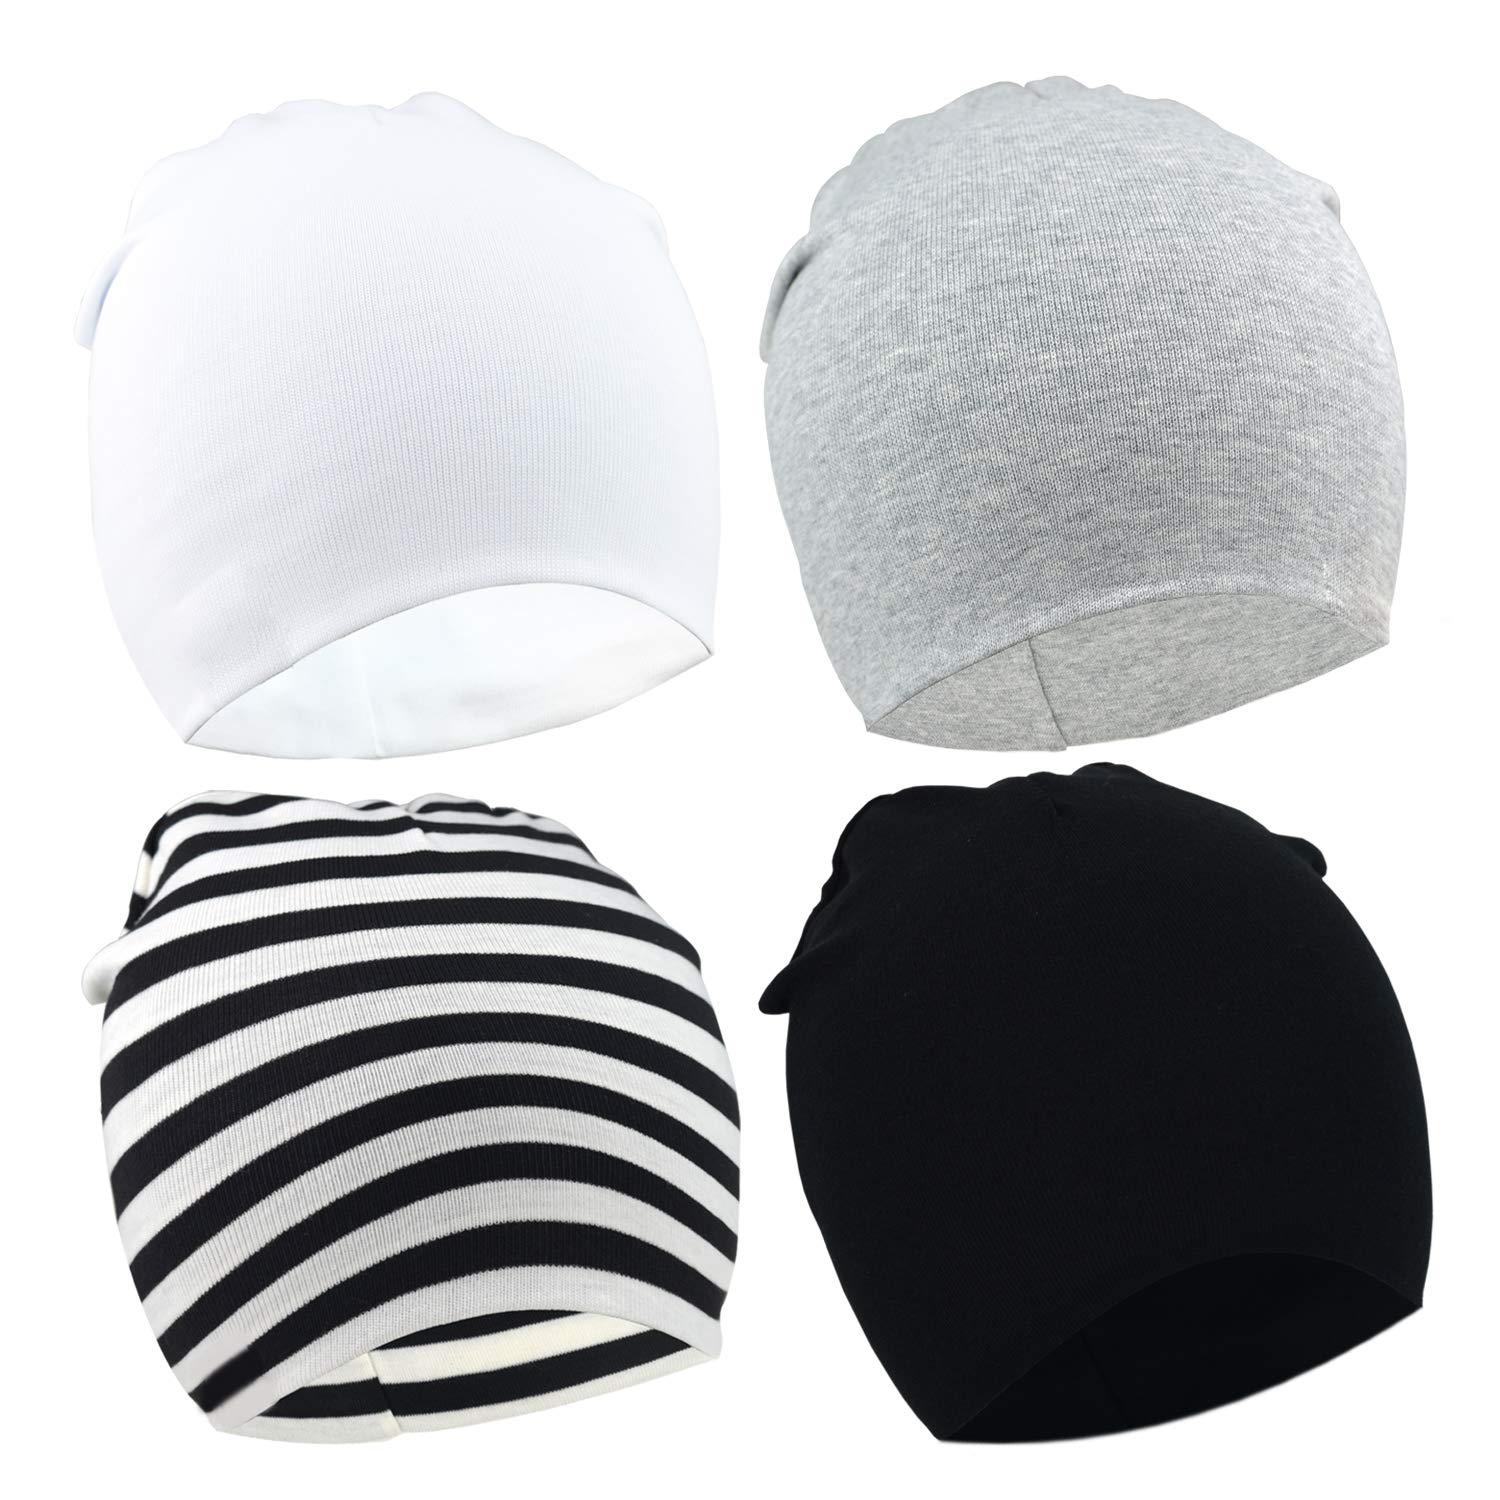 DRESHOW BQUBO Newborn Hat Knotted Hospital Hats Boys Infant Cap Baby Beanies